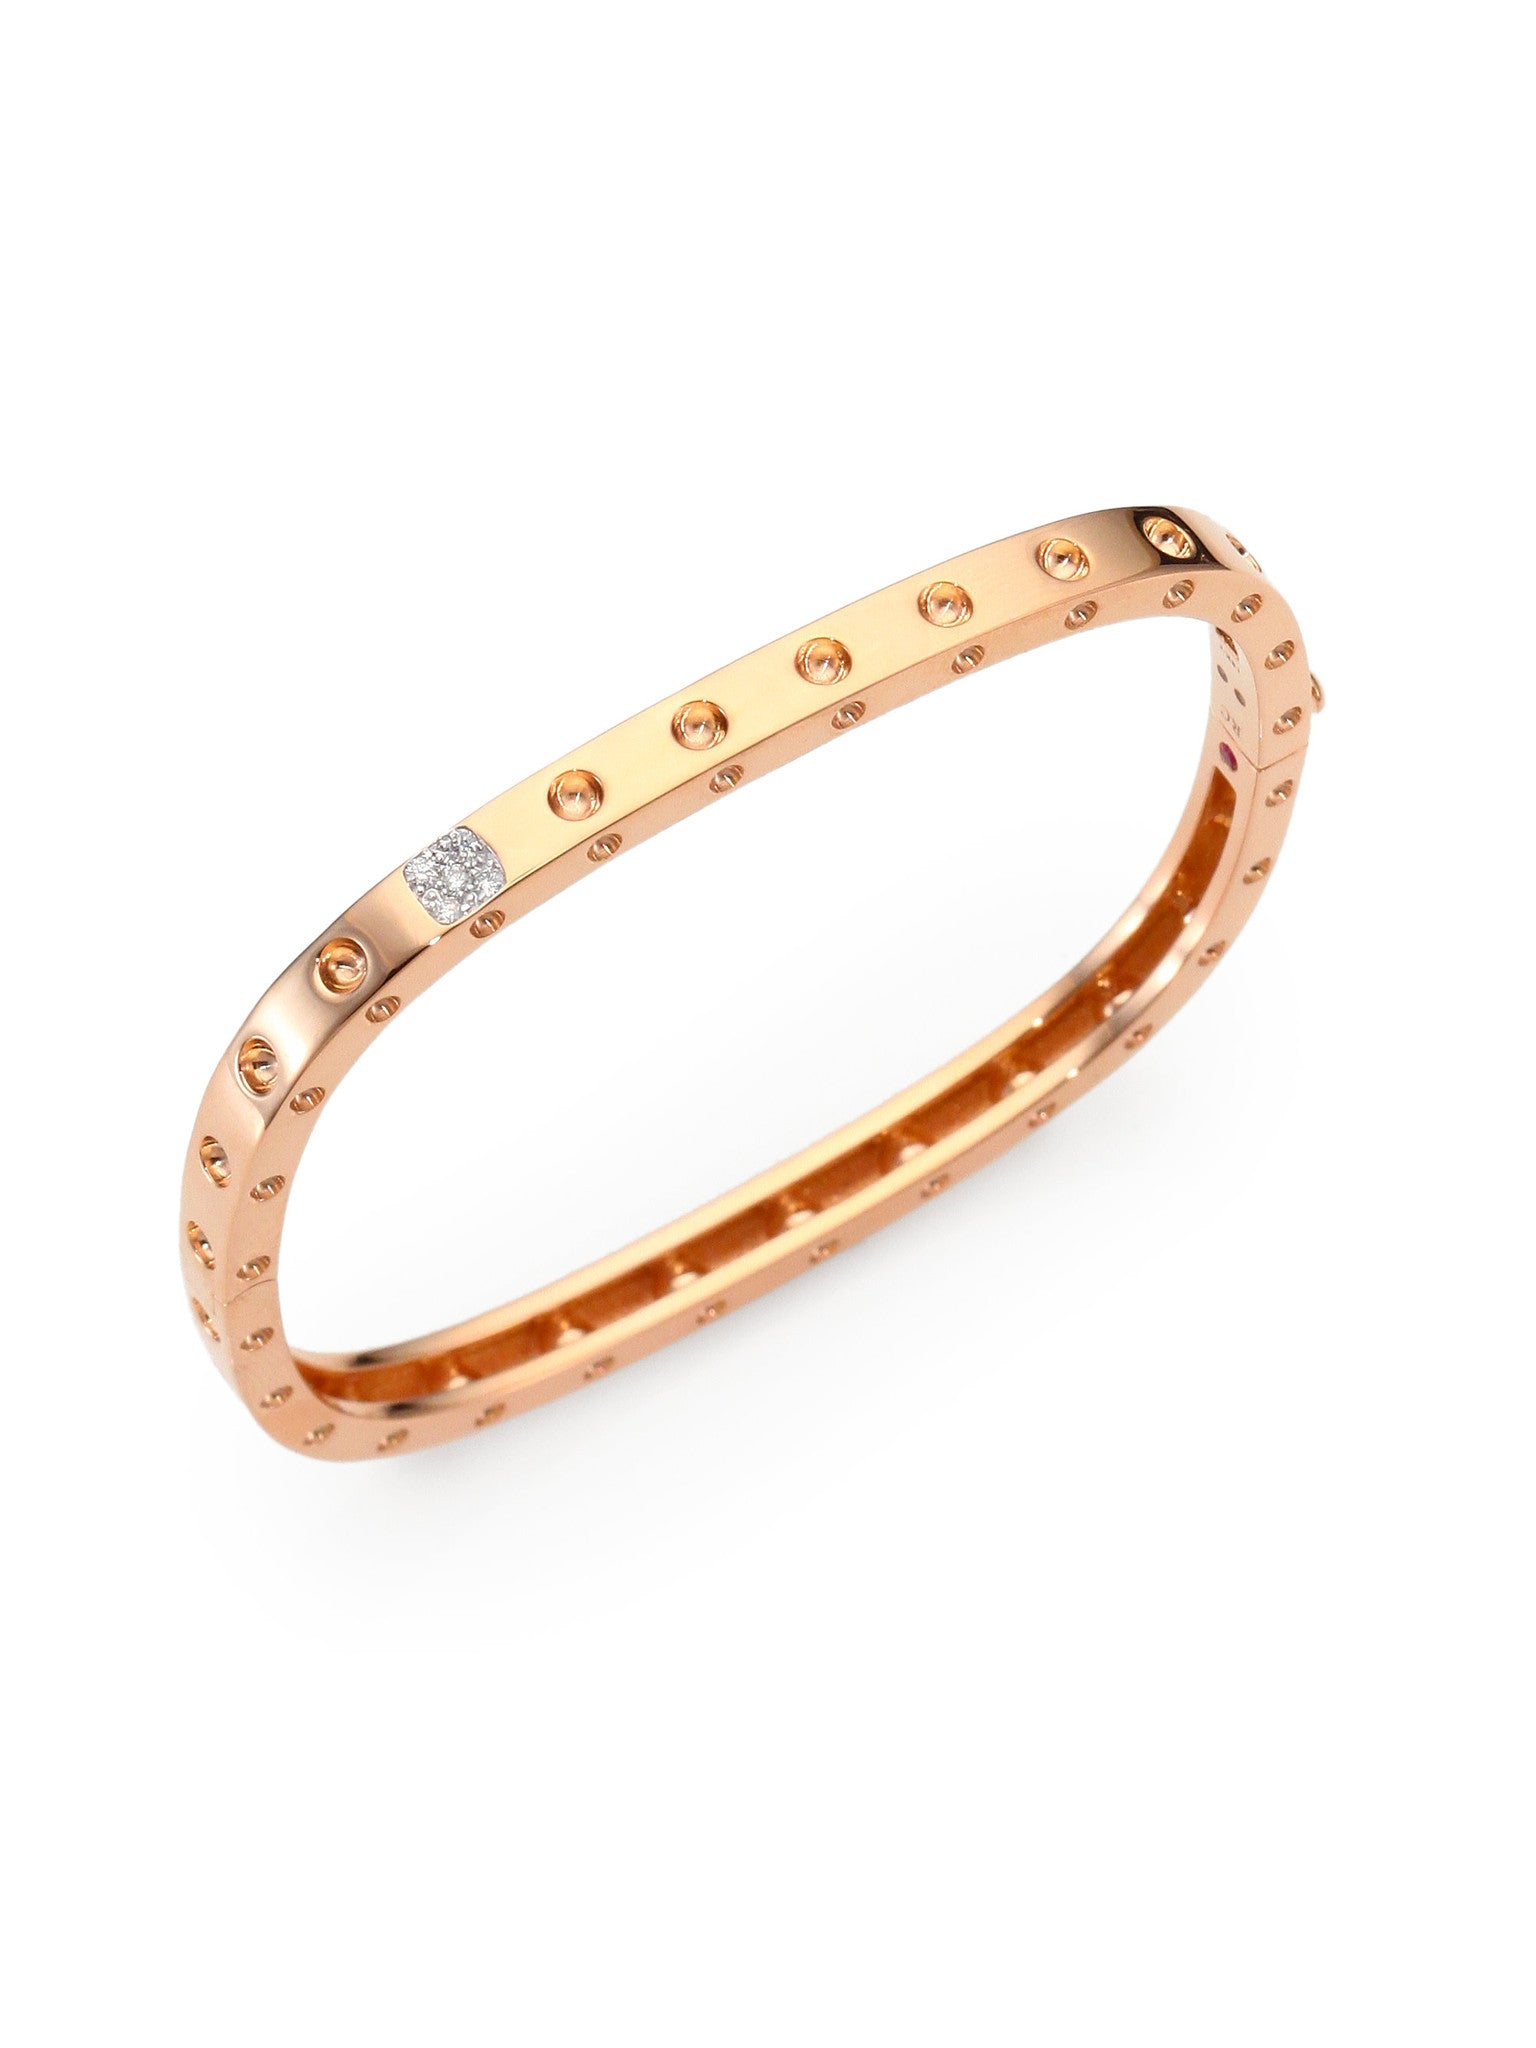 ltd bangles bangle bracelet single i products nov and diamond jewellery